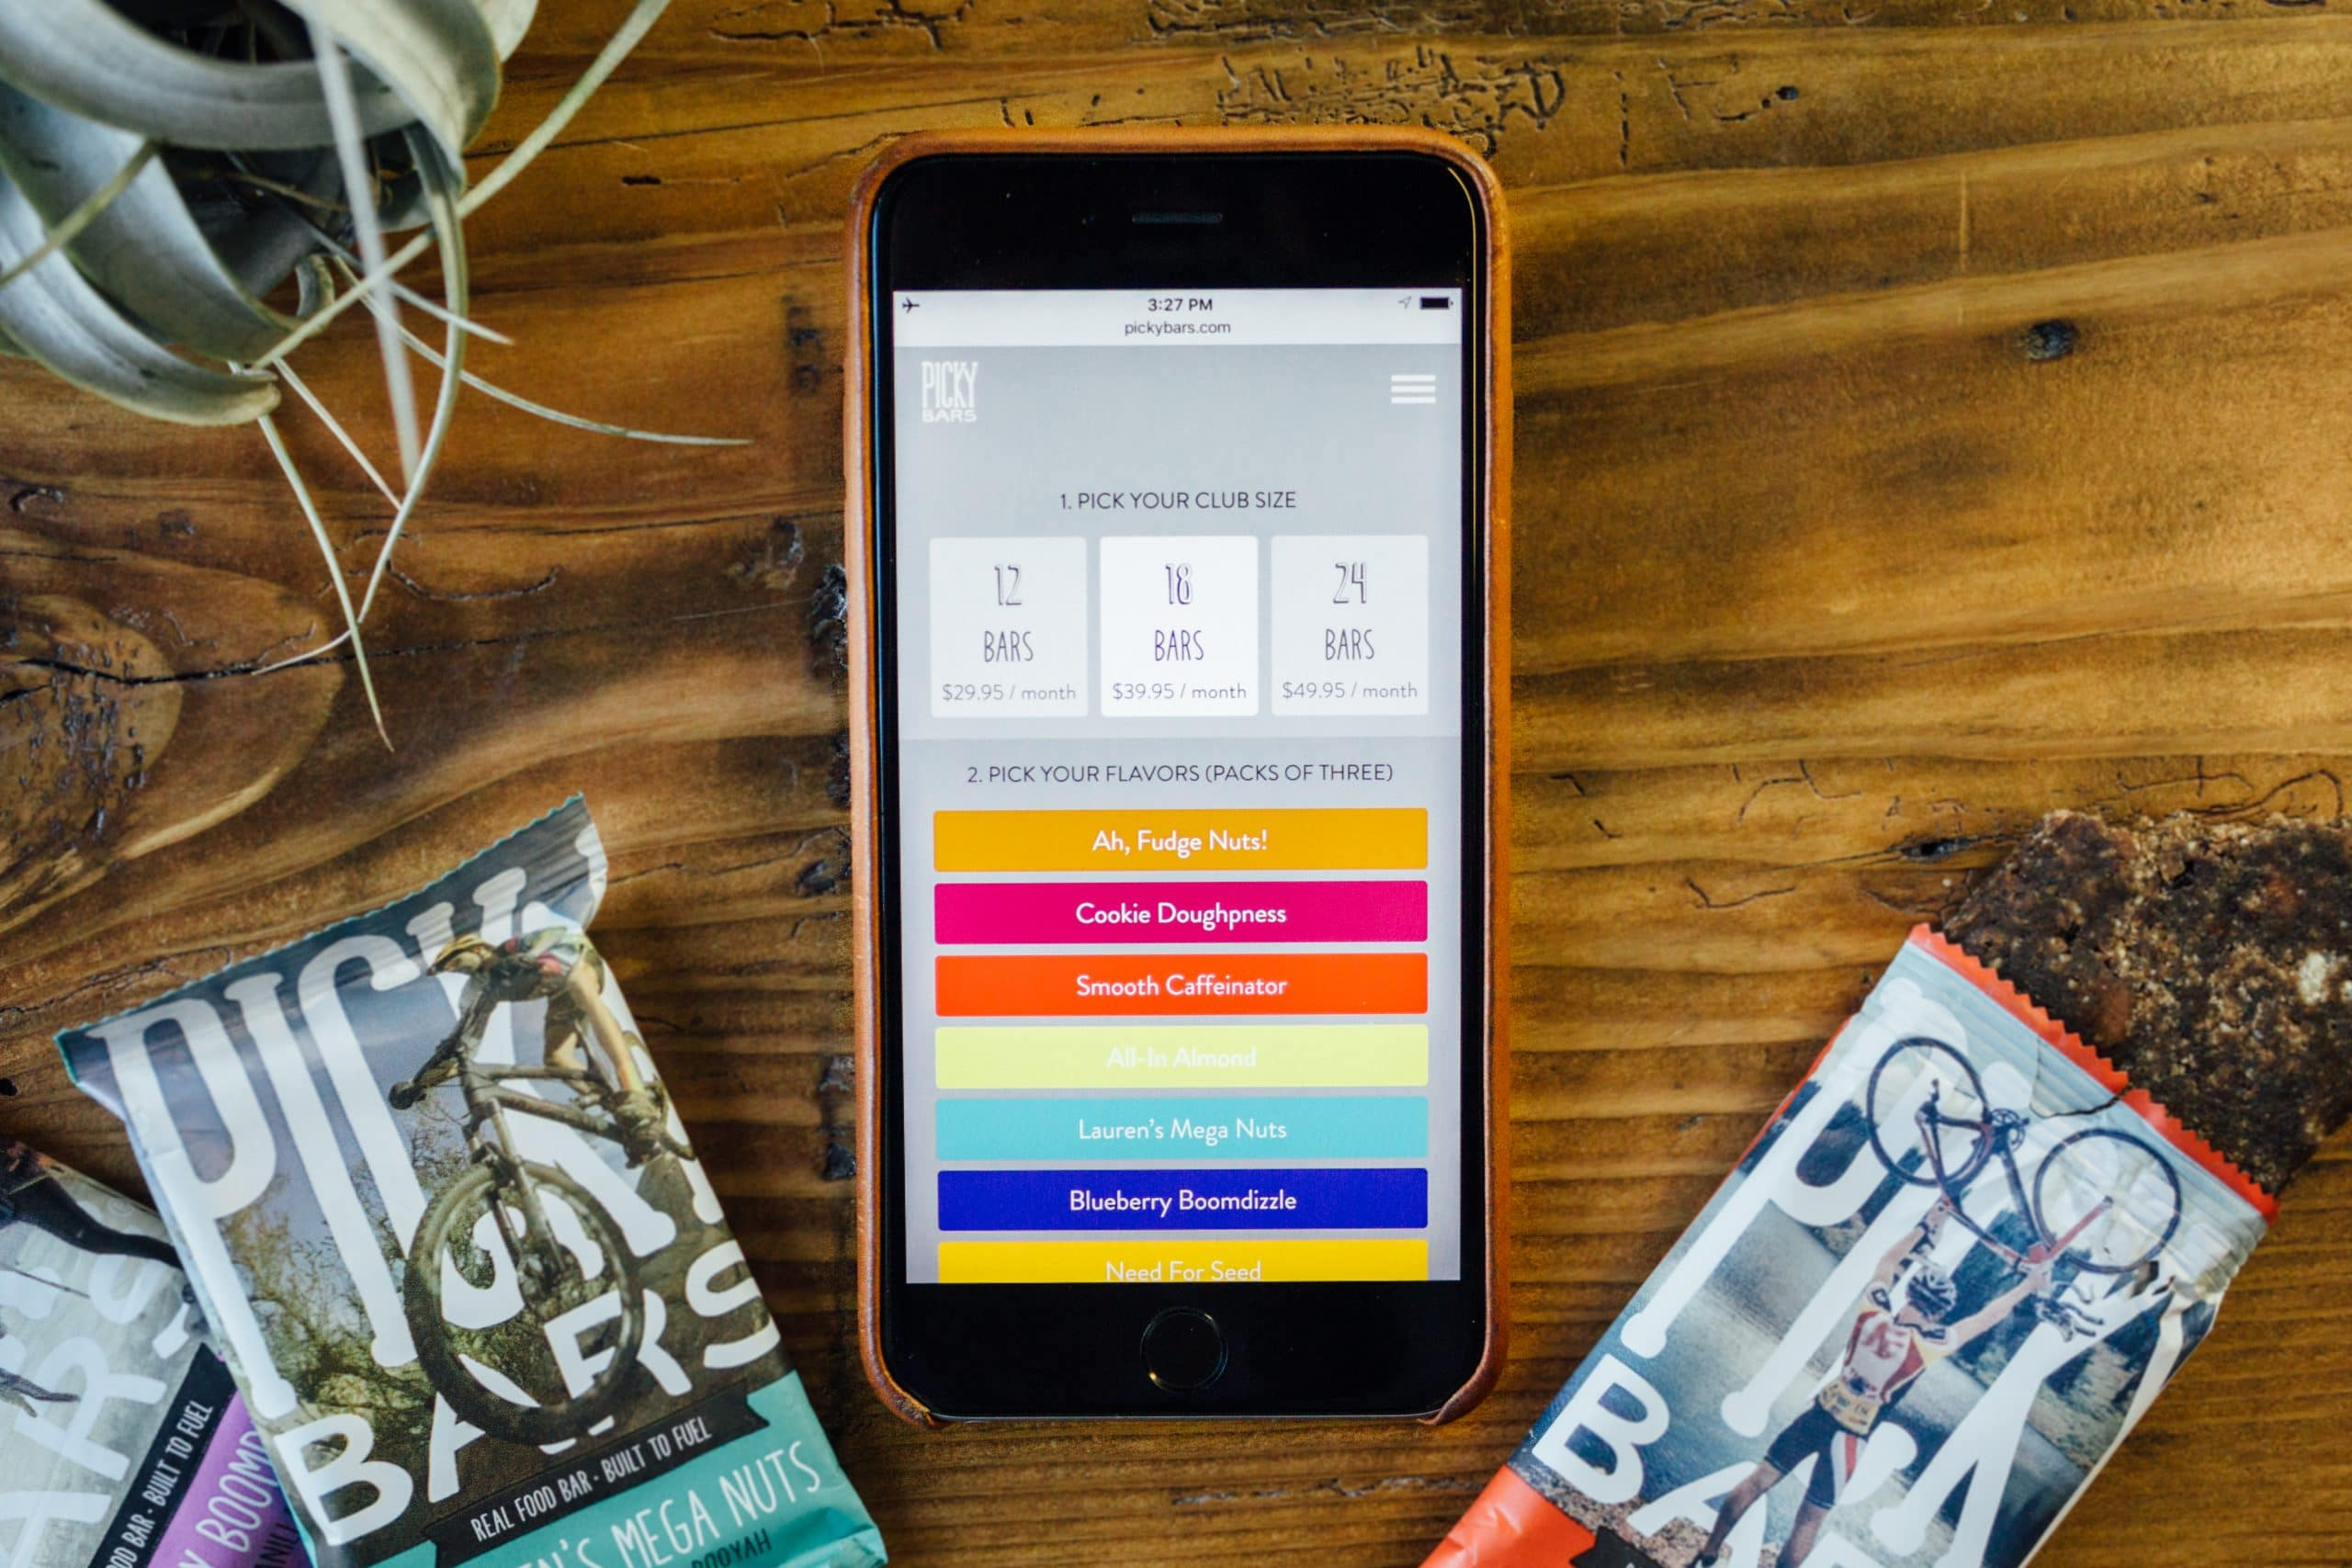 Picky Bars subscription sign-up on the iPhone